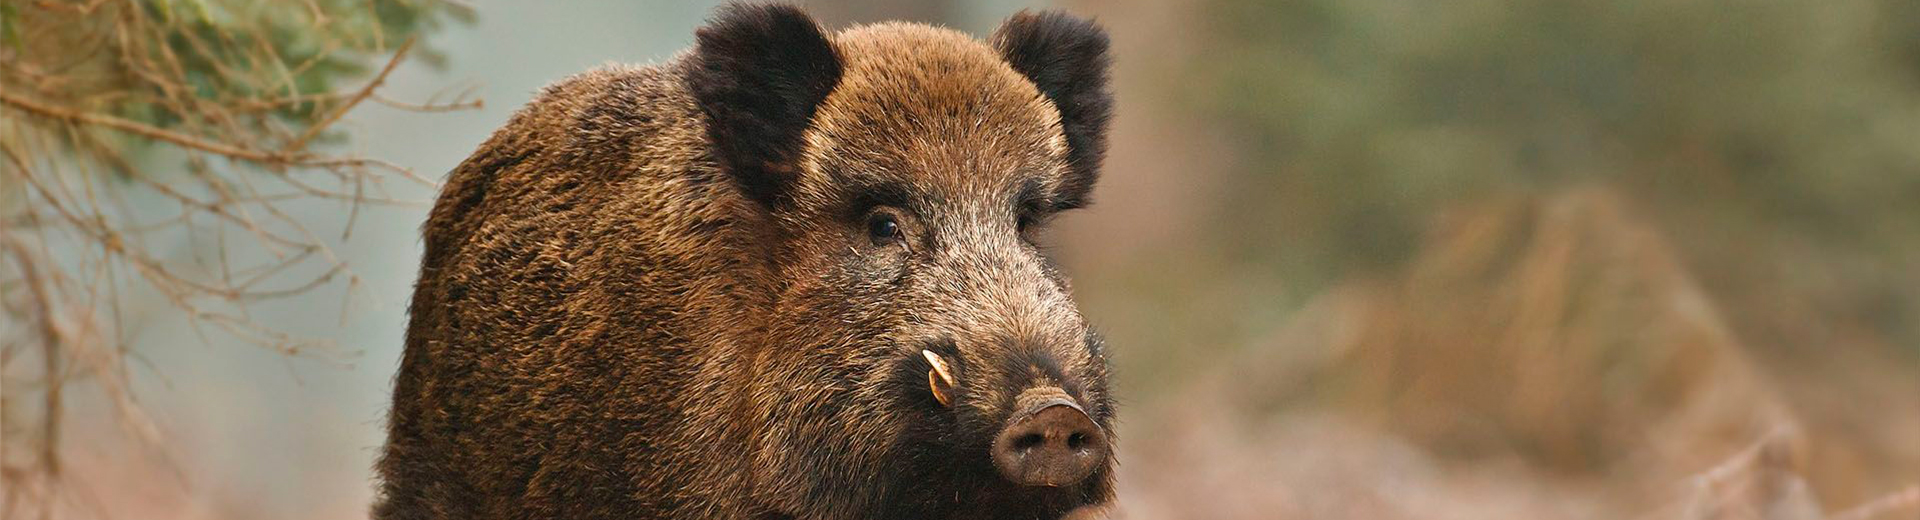 HUNTING WILD BOAR IN SPAIN.